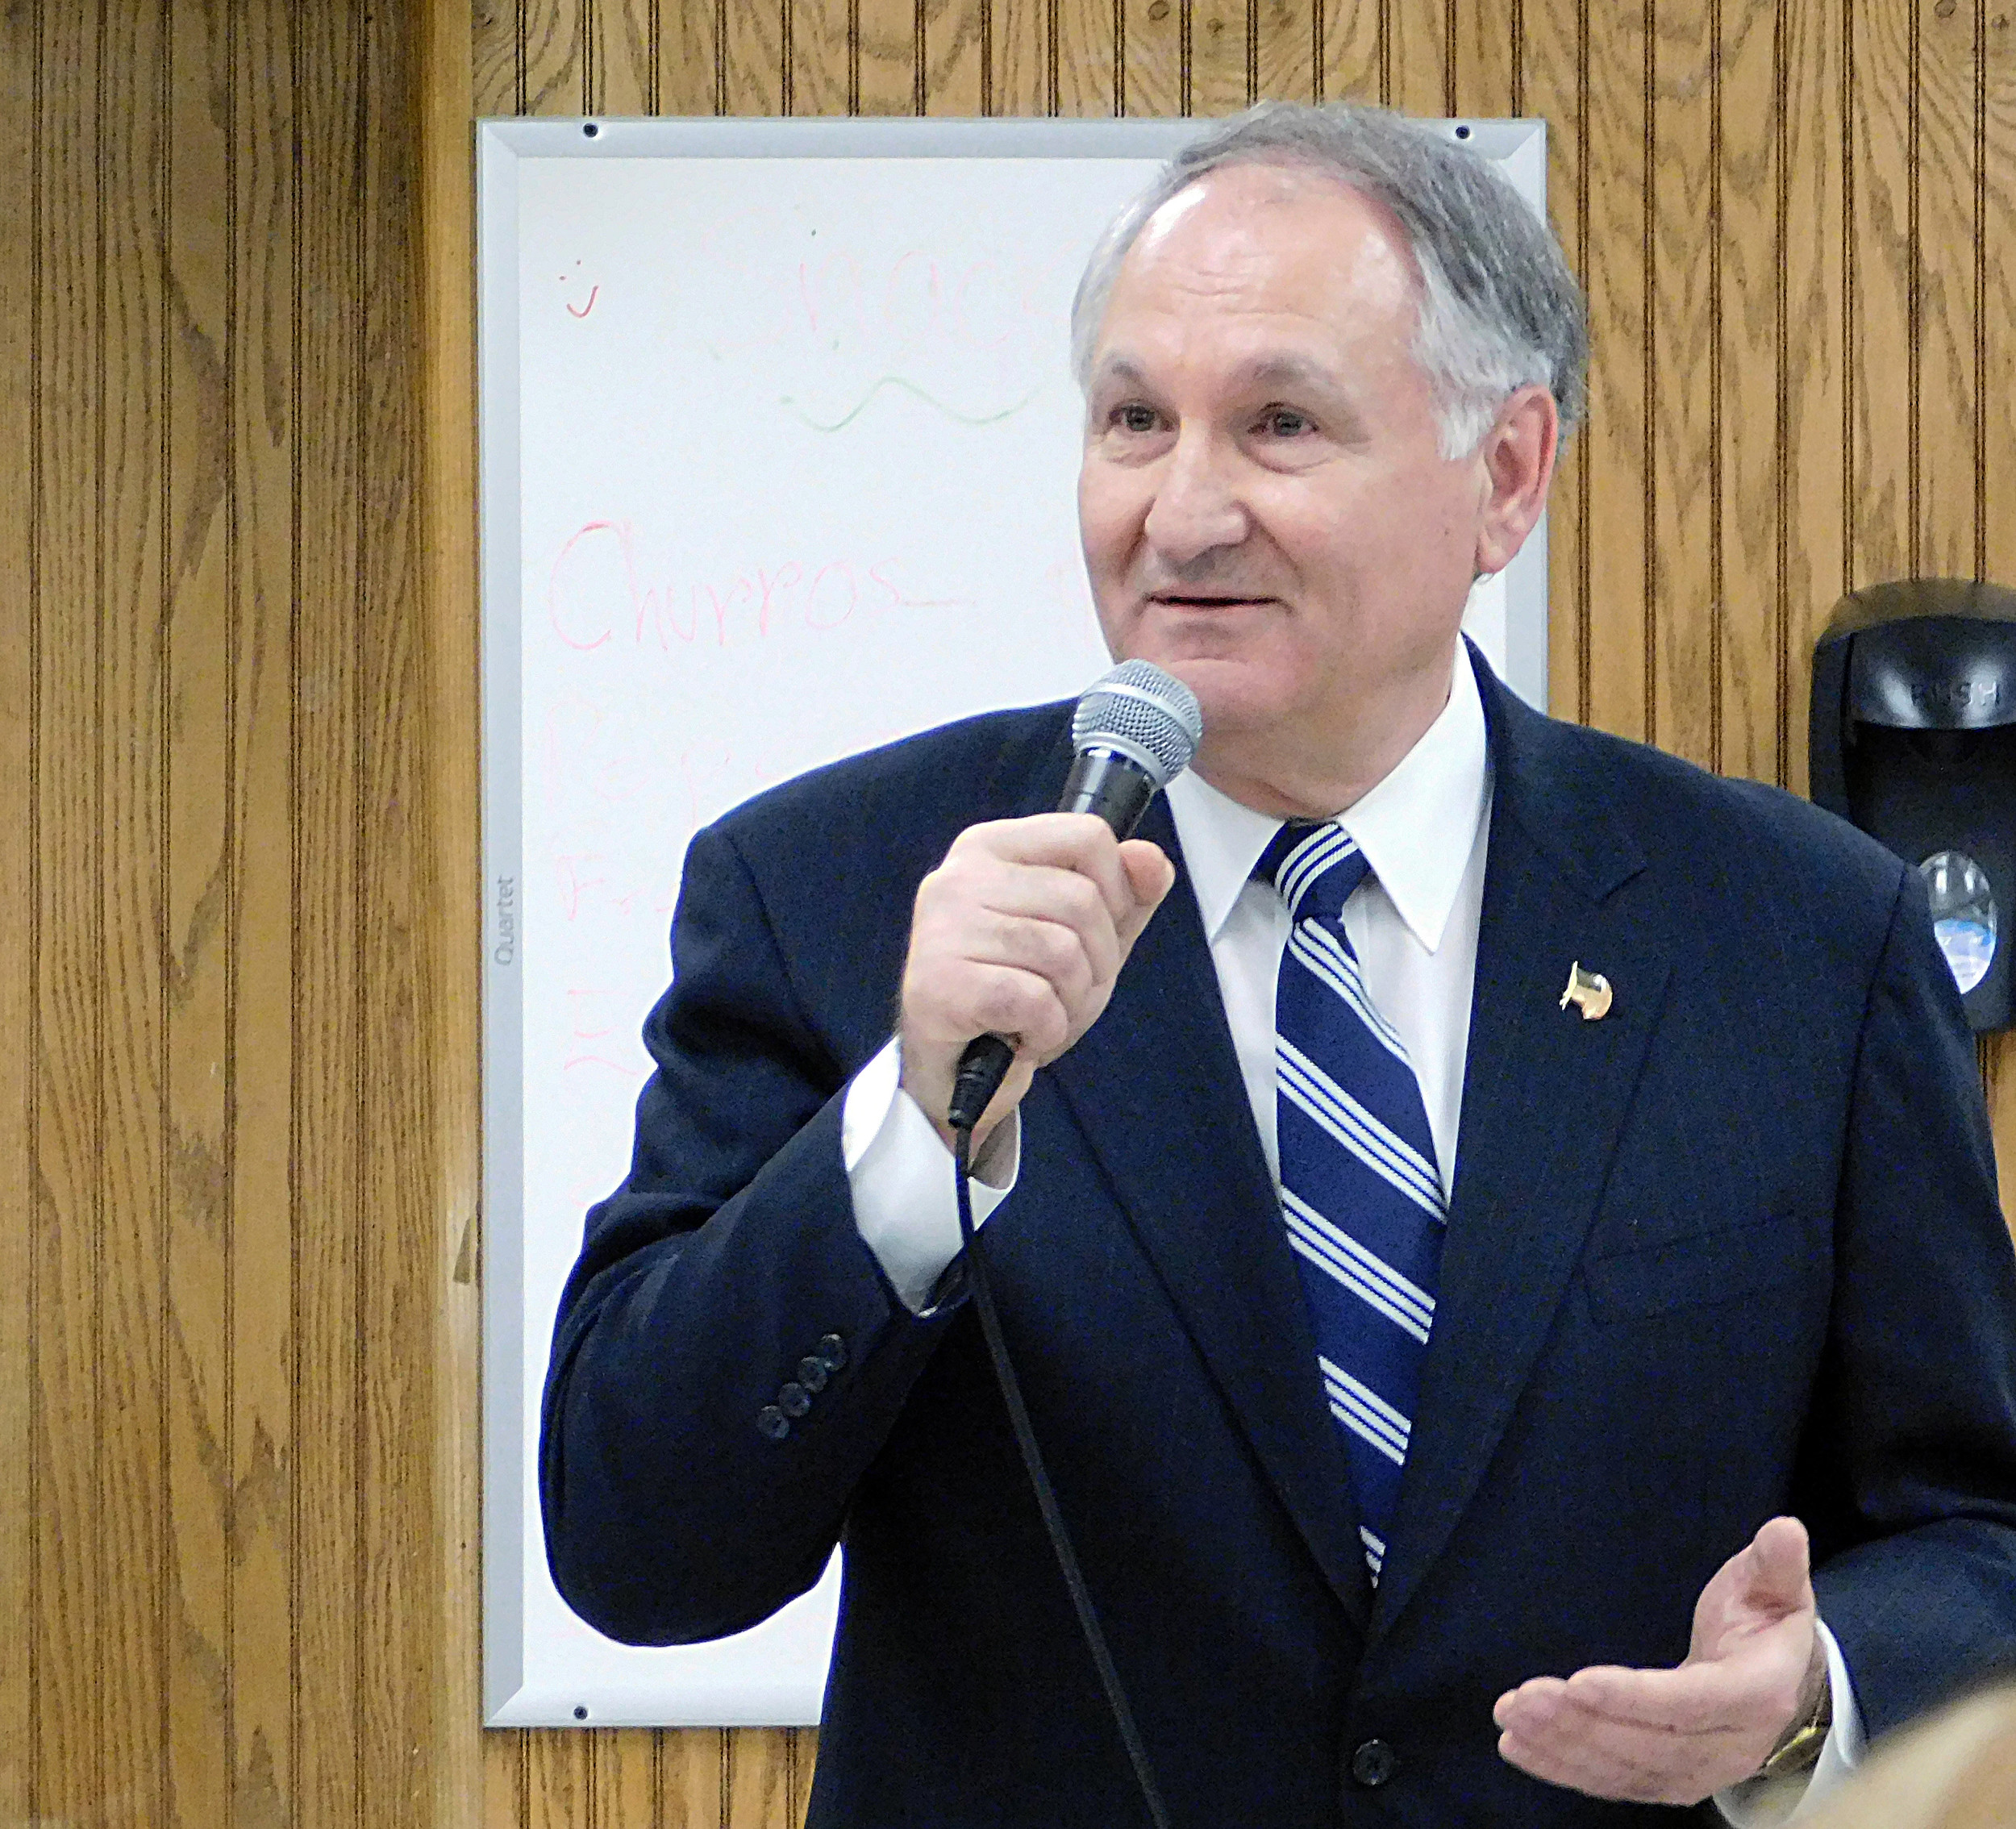 Comptroller George Maragos, also in the running for county executive, defended his recent party change and management of the county's finances at the Democratic candidates forum.